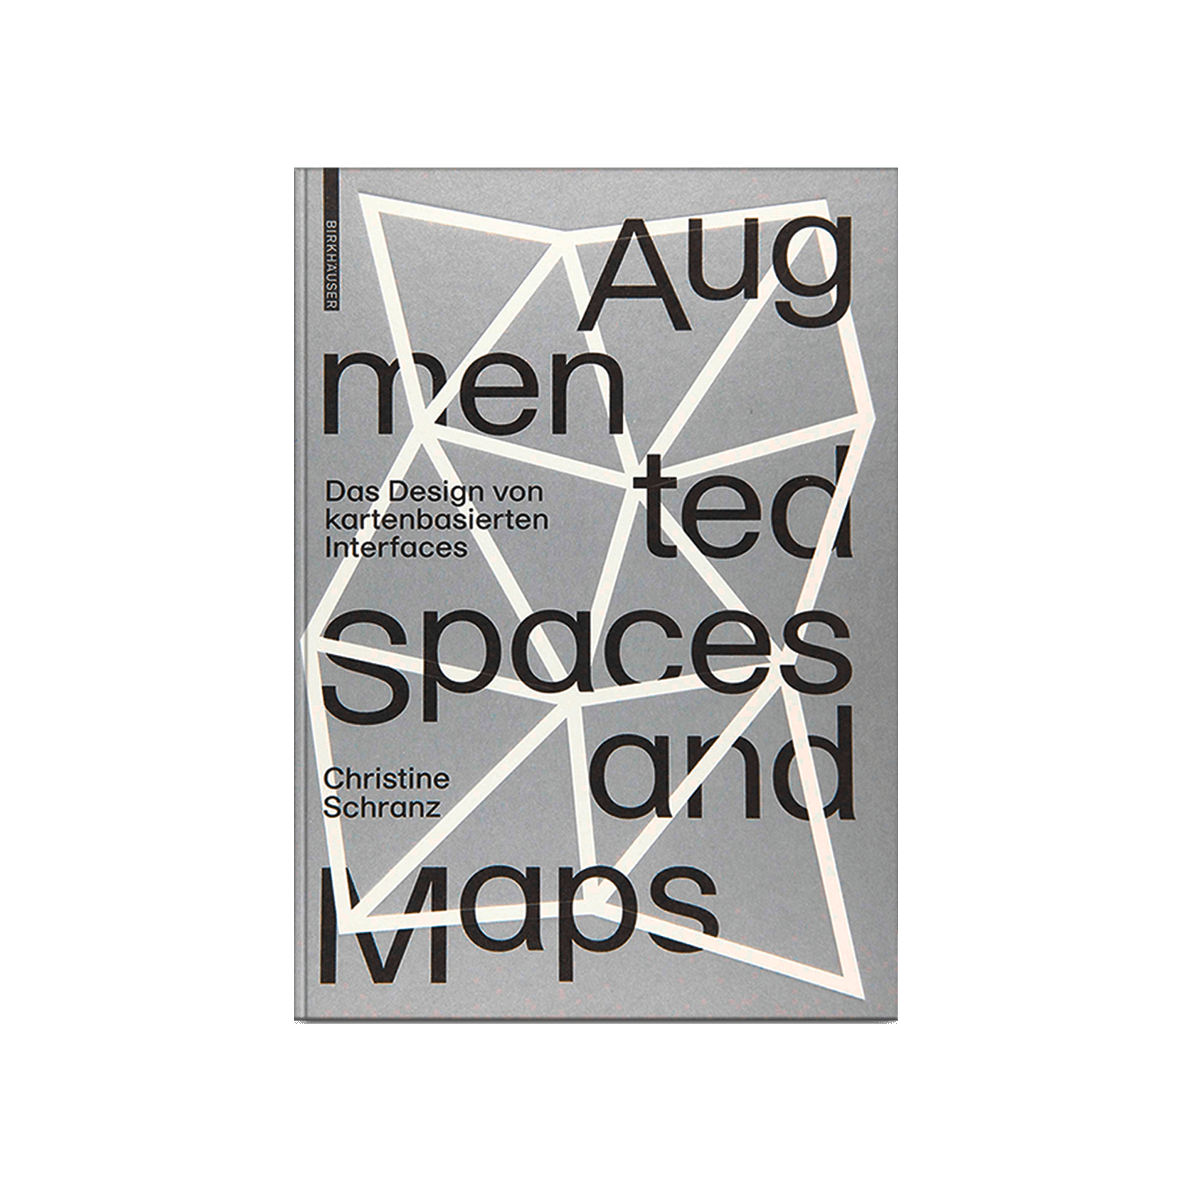 Lektorat Referenz Augmented Spaces and Maps